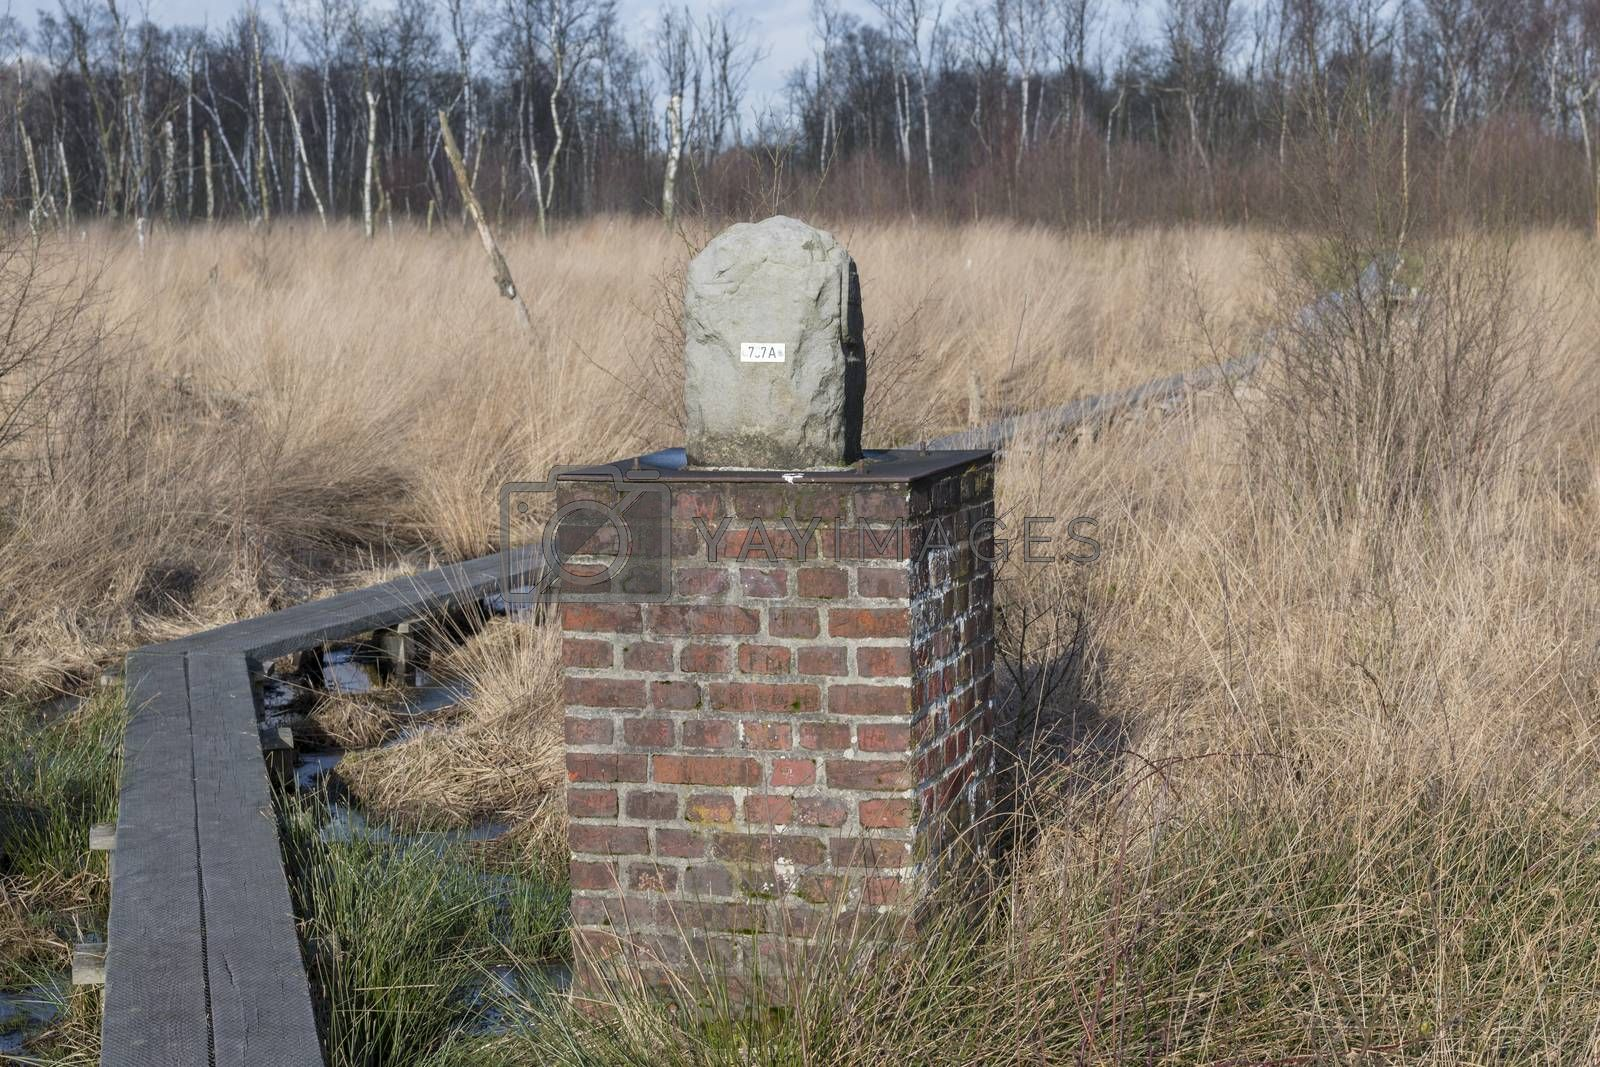 Boundary stone in nature reserve the Wooldse veen on the Southeast side of the municipality of Winterswijk in the Netherlands to the border with Germany. This peat moor area is dissected by the border between the Netherlands and Germany. Therefore there are many boundary stones to be found in this nature reserve.